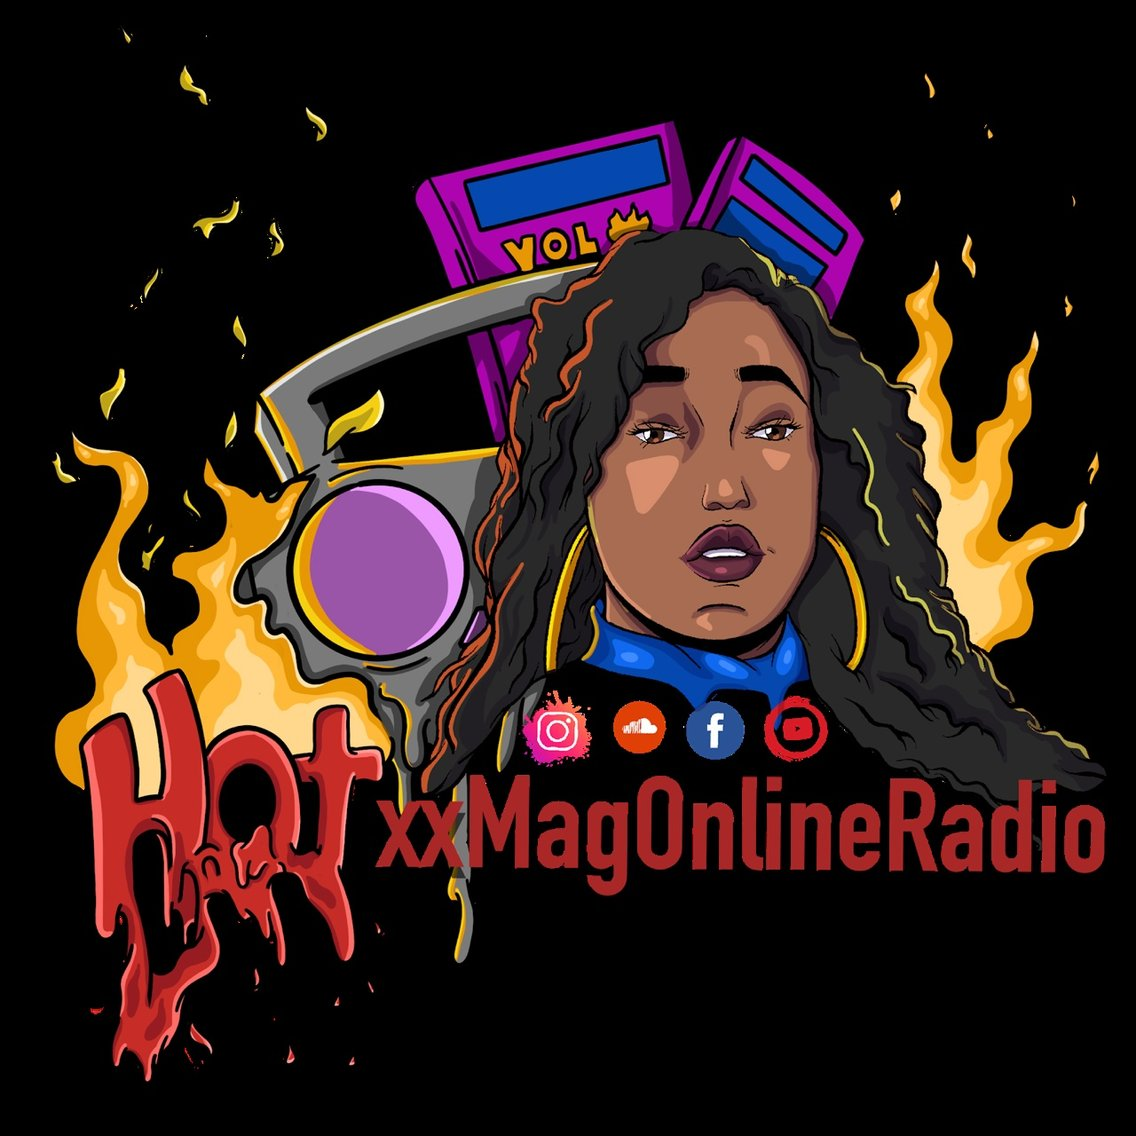 HotxxMagOnlineRadio's show - Cover Image